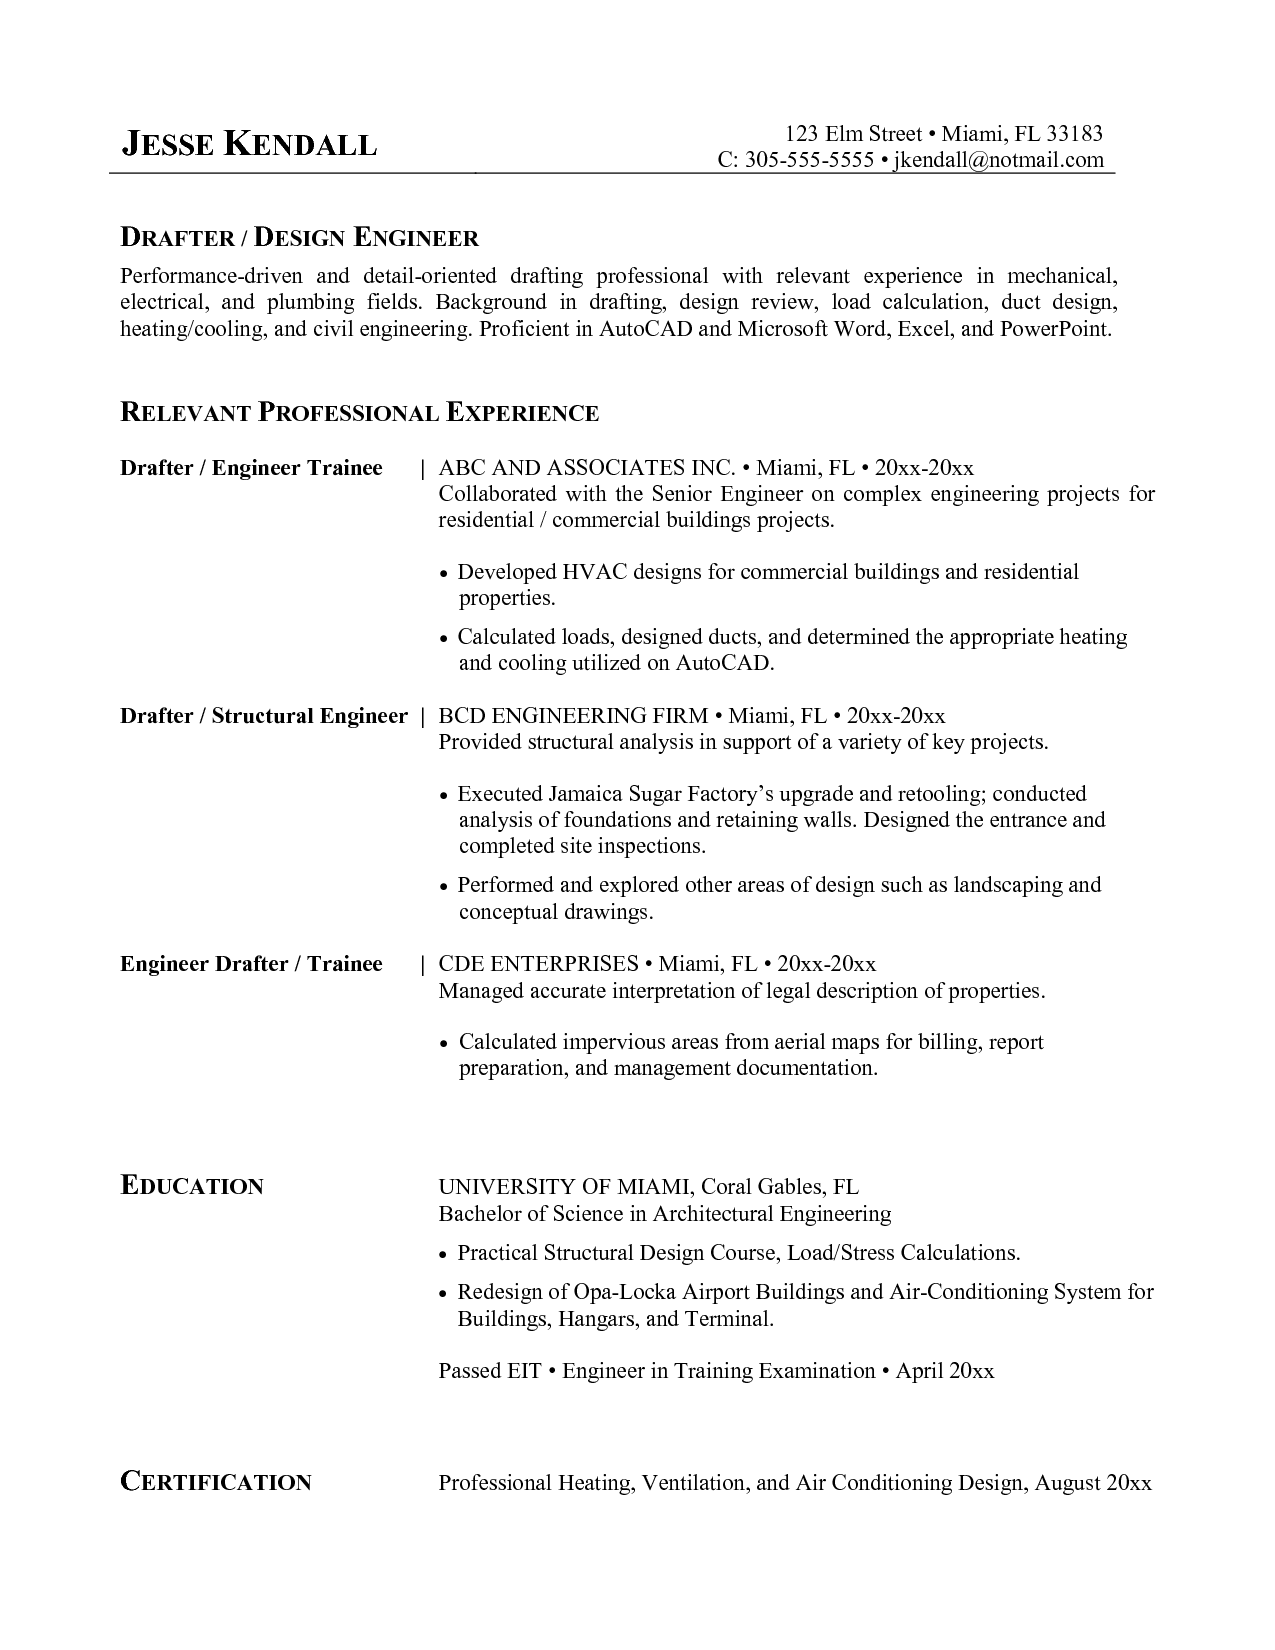 sample pharmacist cover letter for resume letter great hvac resume sample hvac resume samples templates hvac - Example Of Excellent Resume